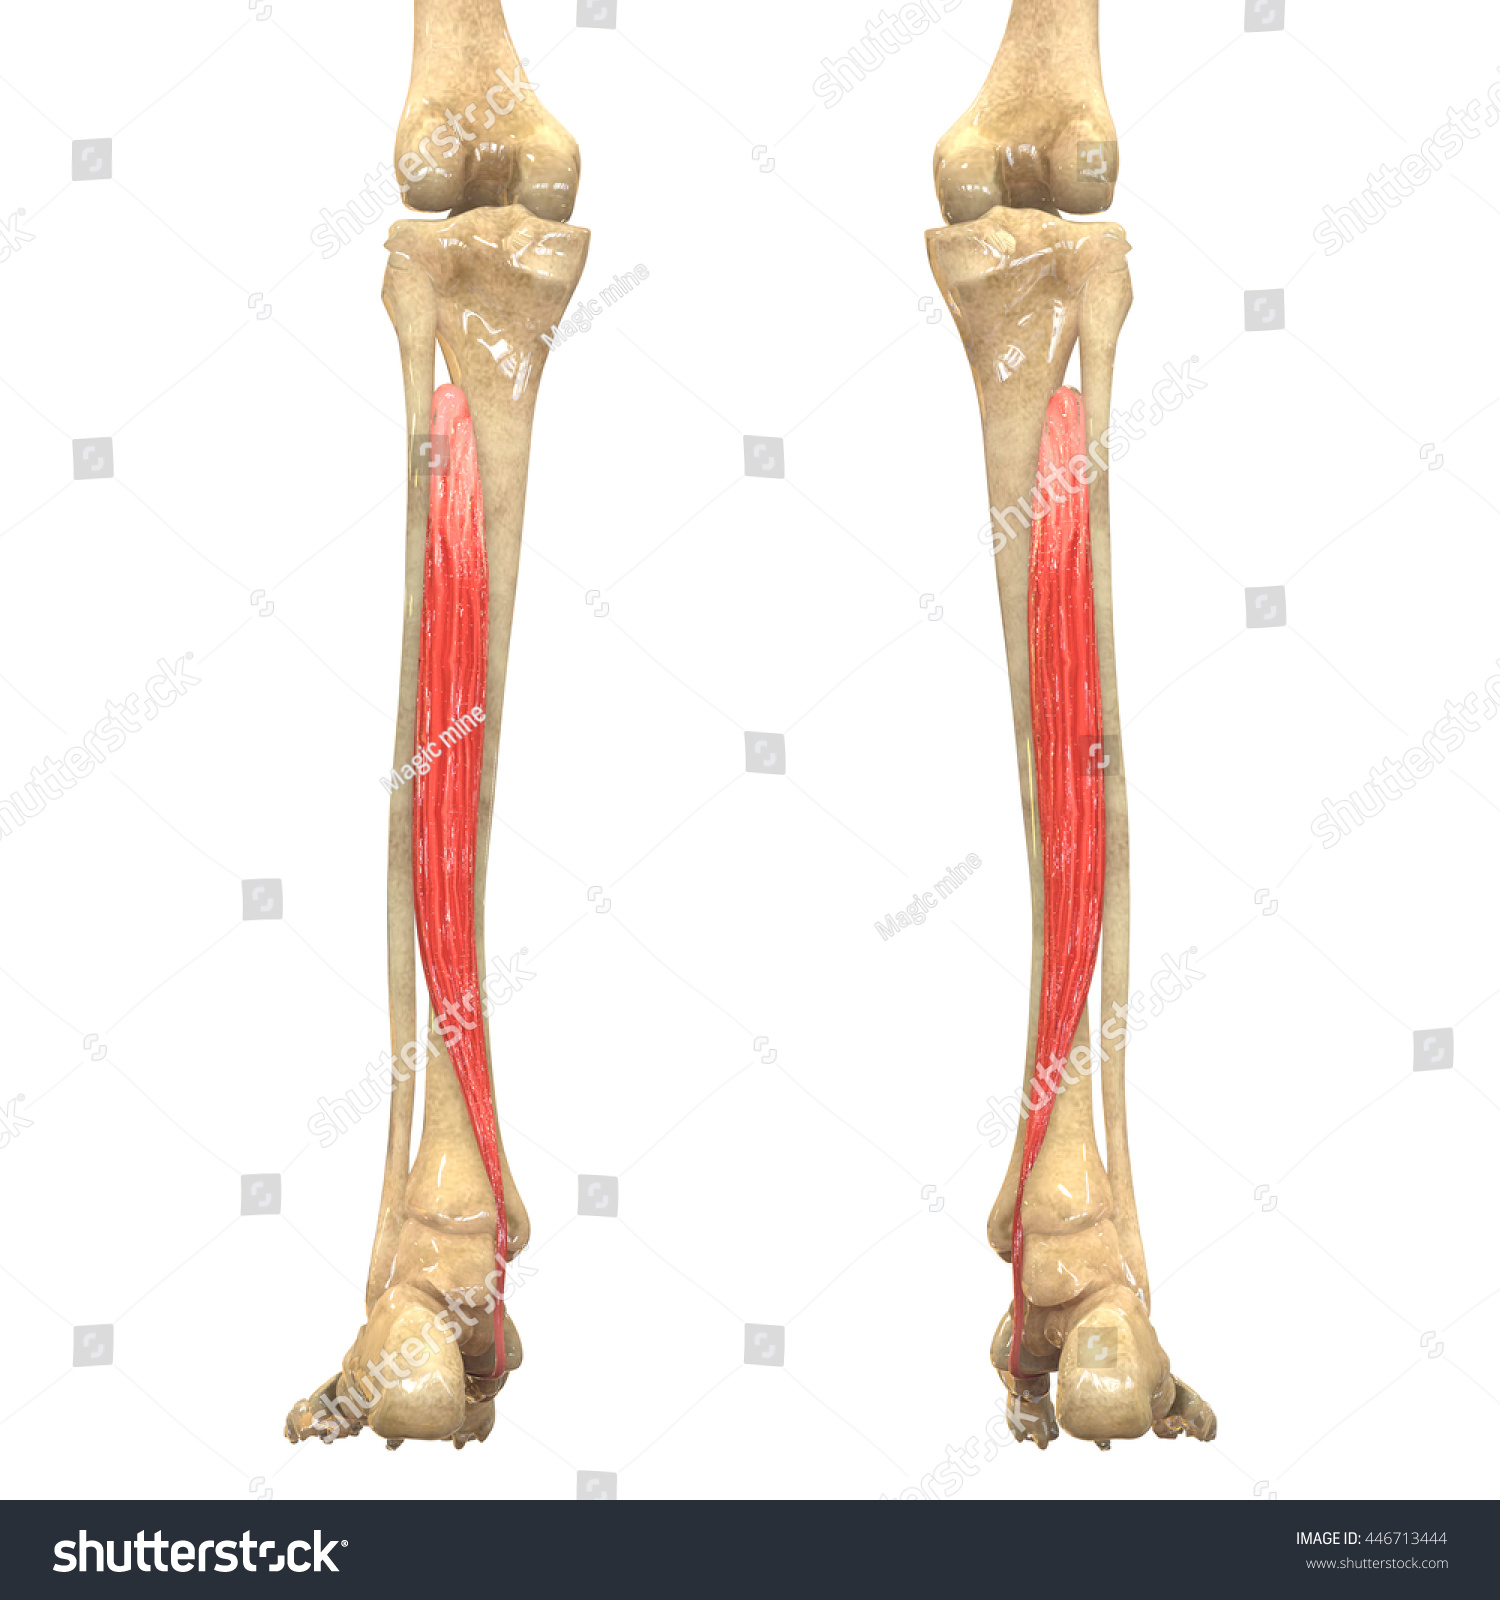 Human Body Muscles Anatomy Tibialis Posterior Stockillustration ...